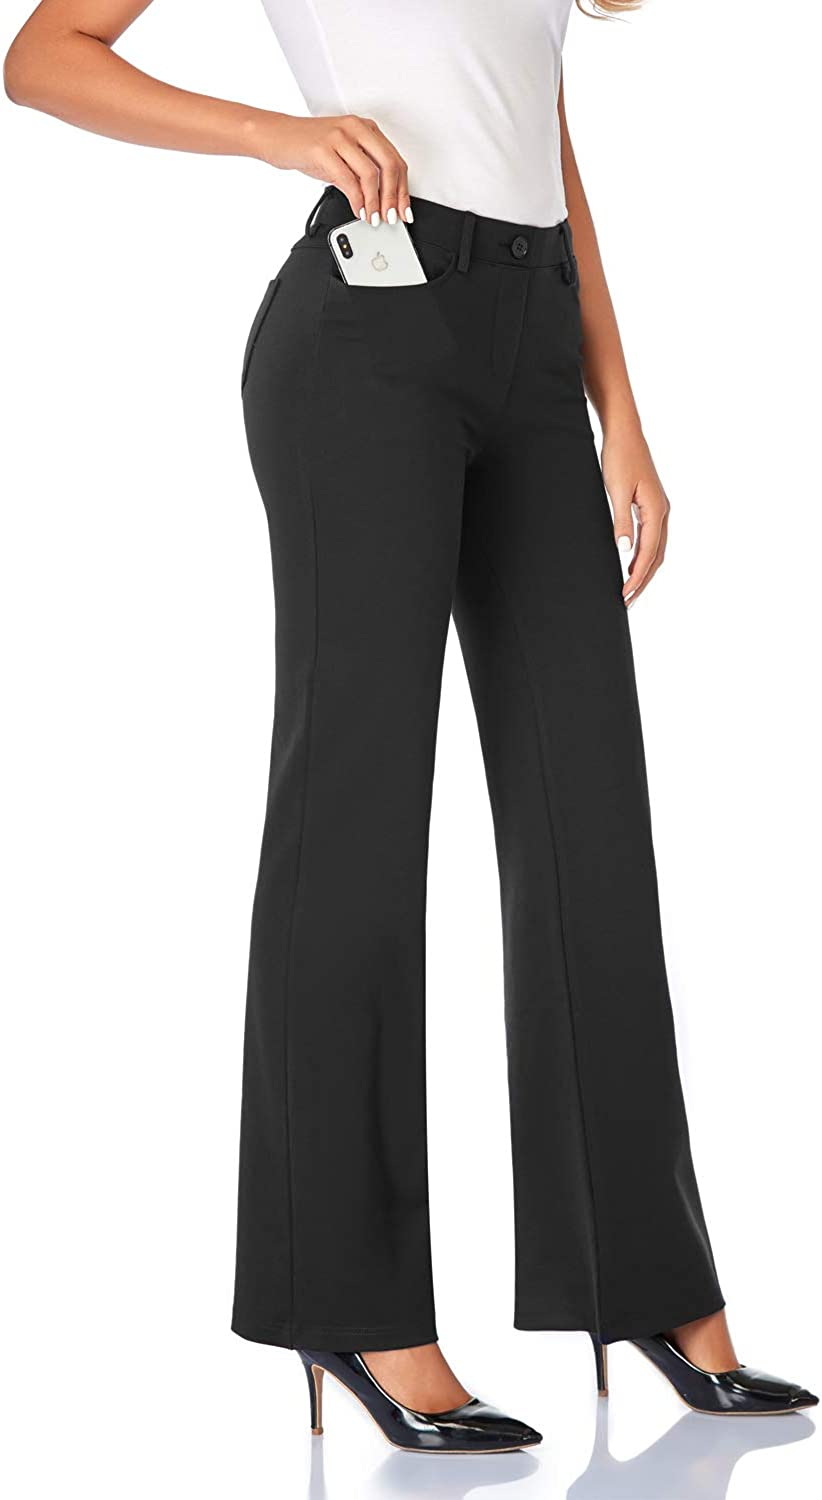 Tapata Women's 28''/30''/32''/34'' Stretchy Bootcut Dress Pants with Pockets Tall, Petite, Regular for Office Work Business